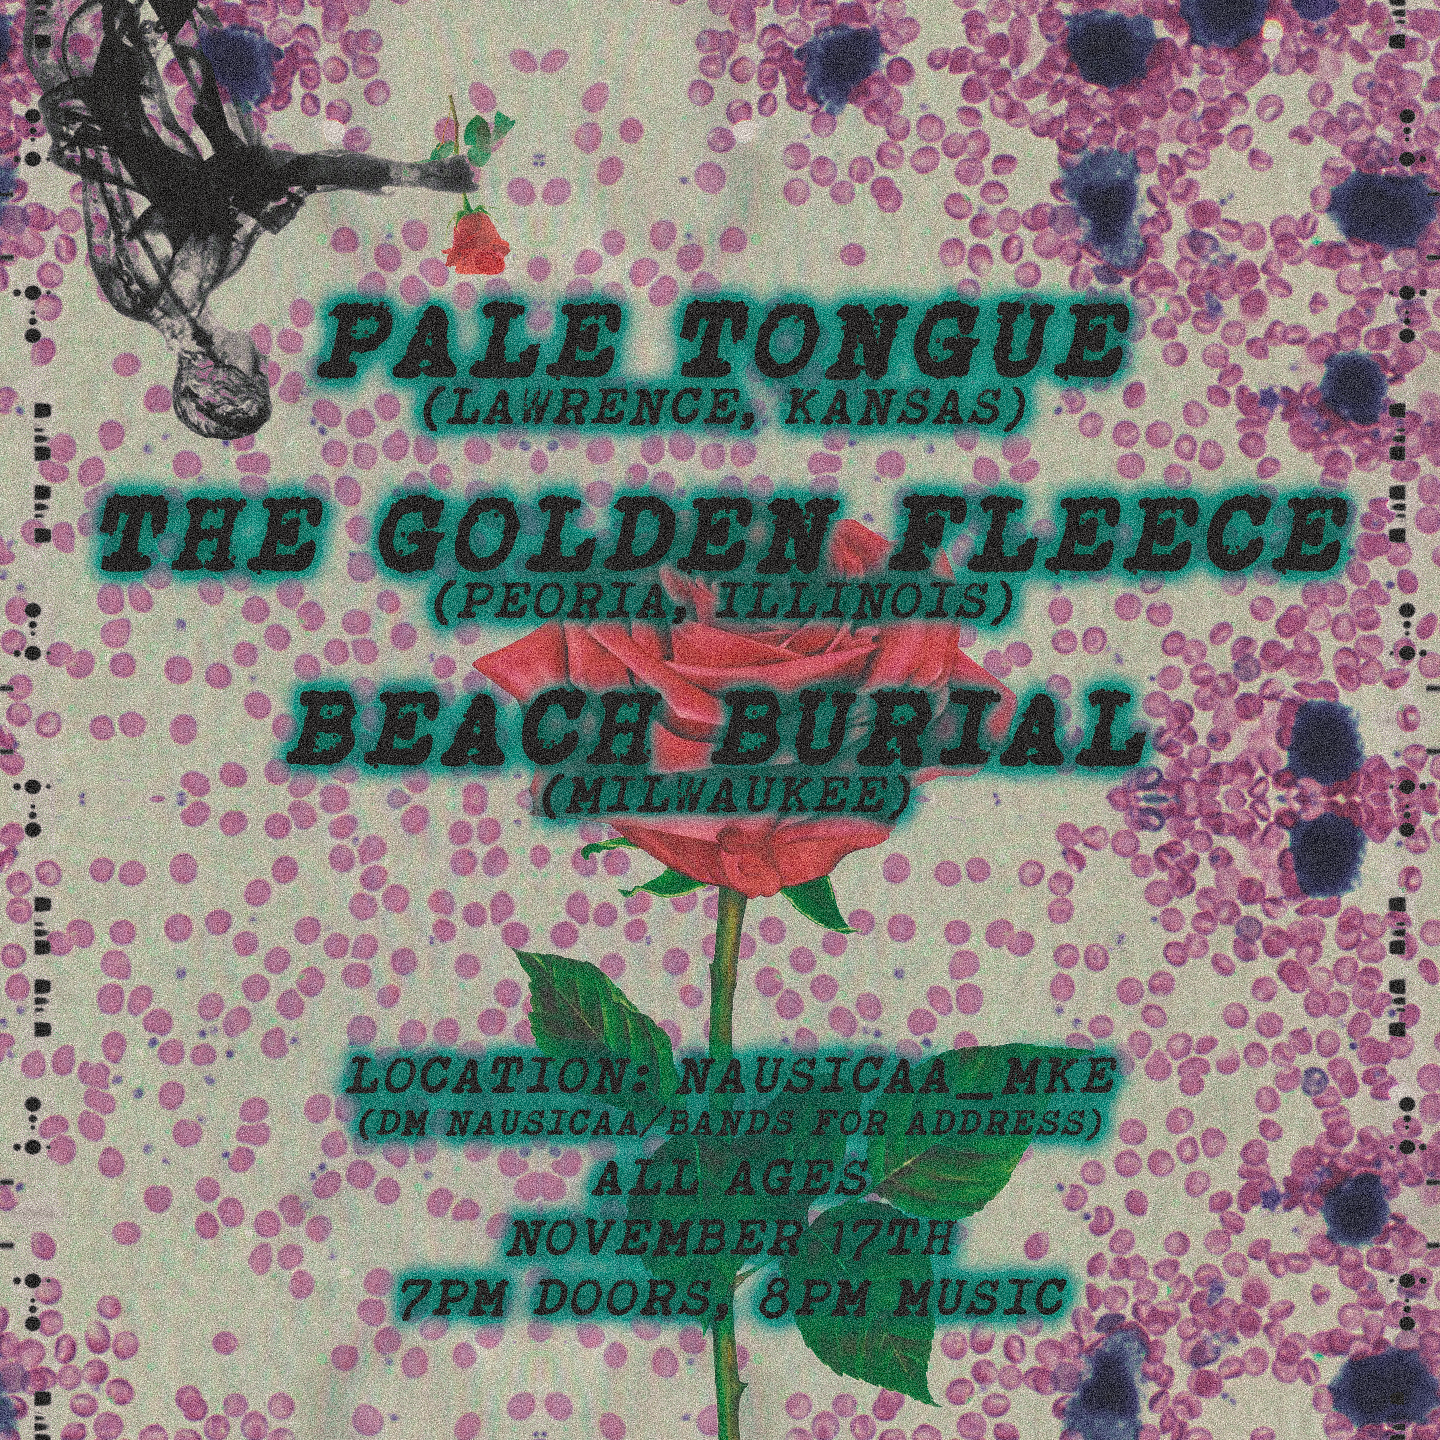 PALE TONGUE-GOLDEN FLEECE-BEACH BURIAL V3 WITH GRAIN.png